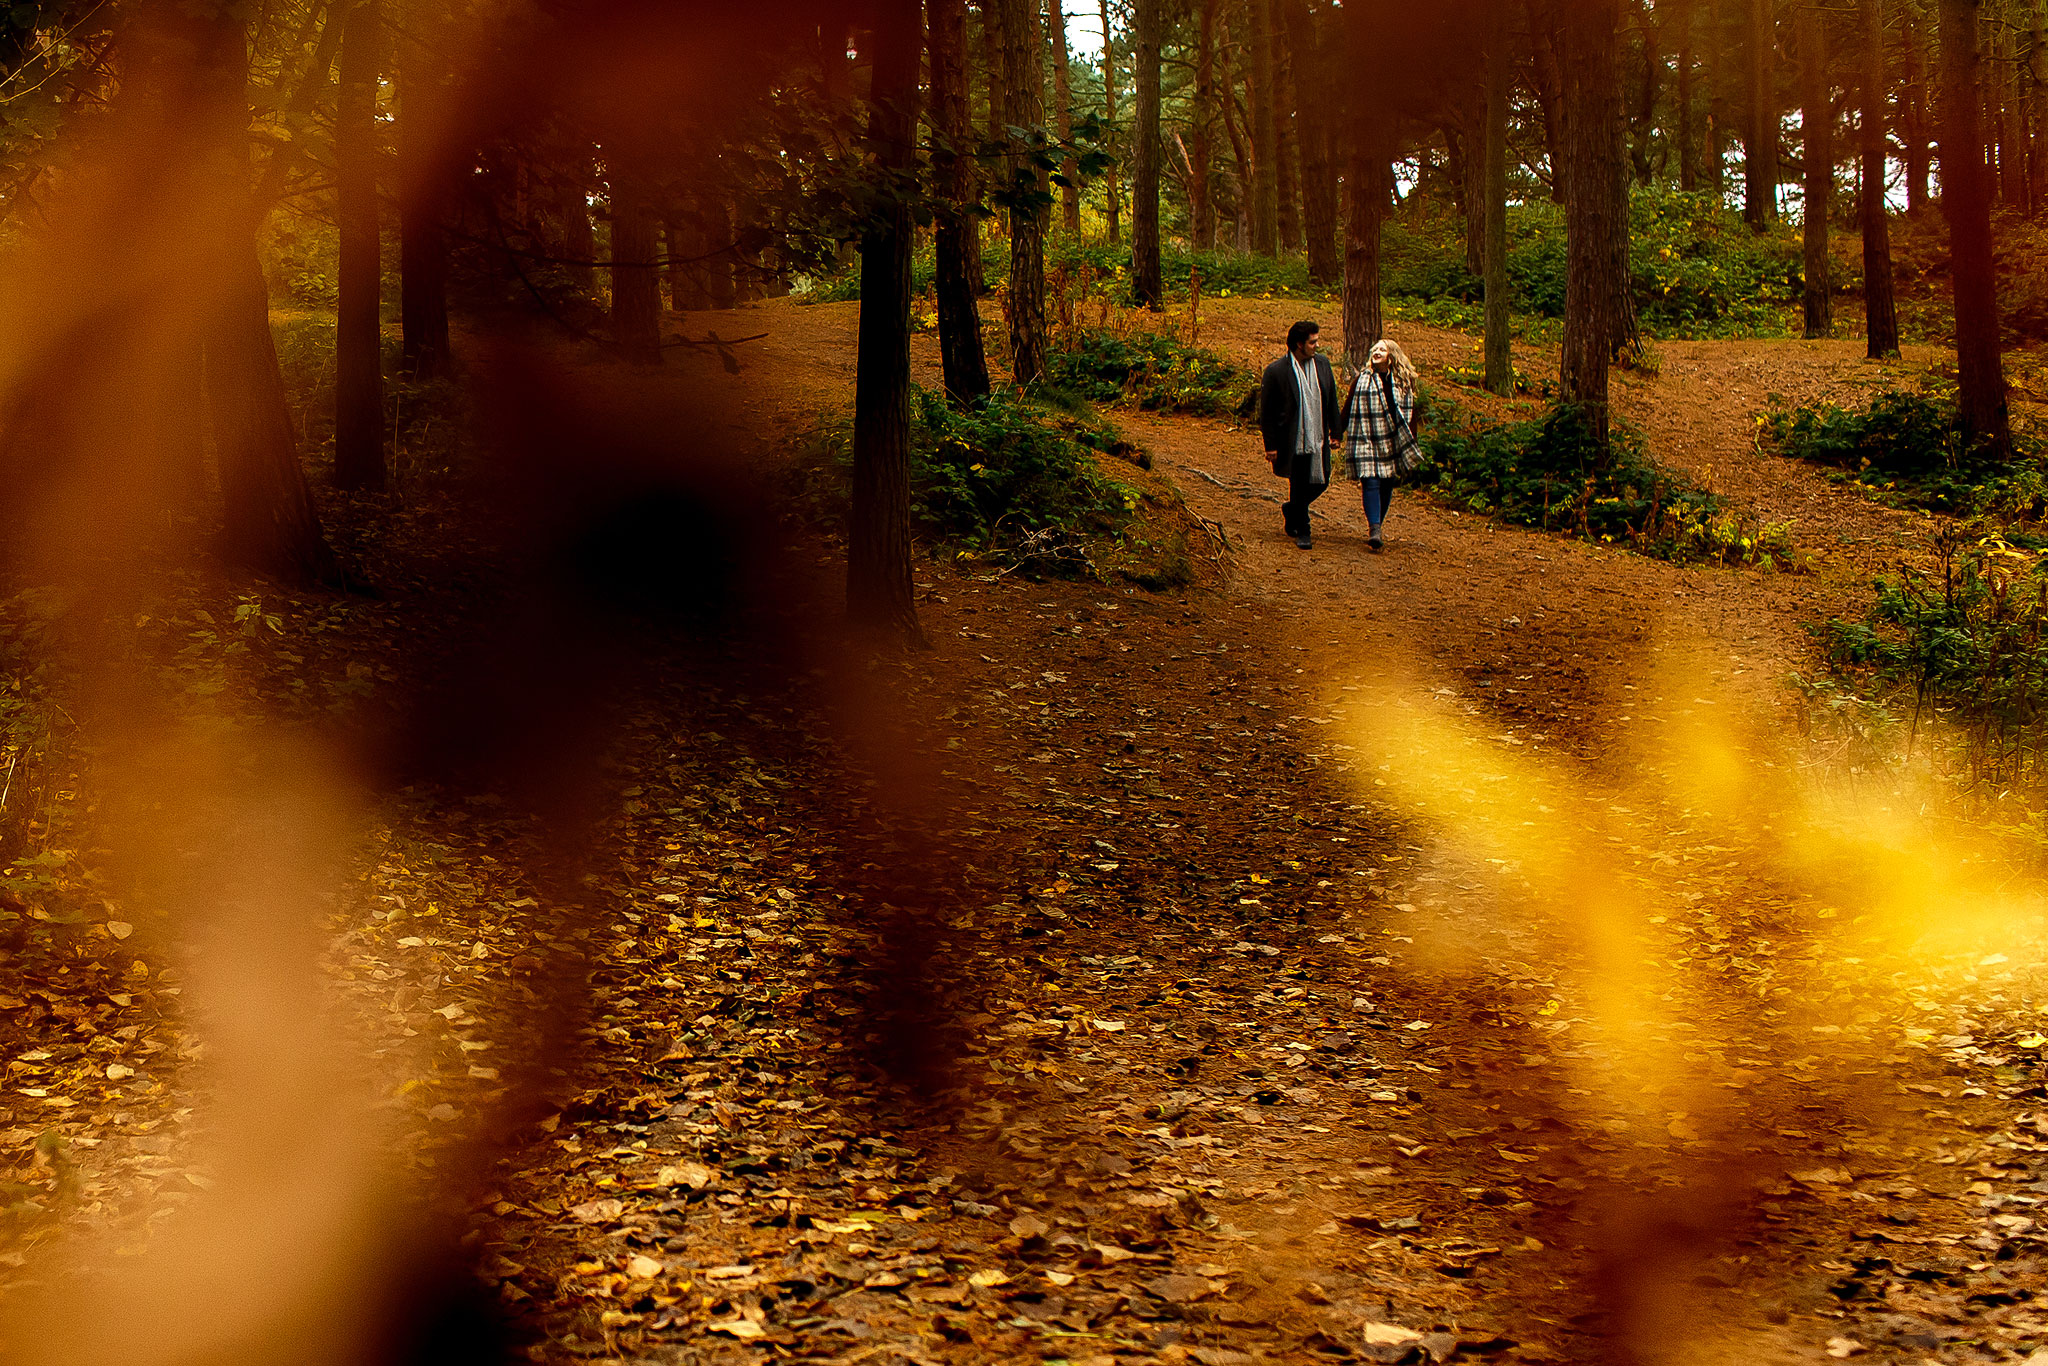 Autumn engagement shoot in the woods with golden leaves. Taken from far away with couple framed in leaves.